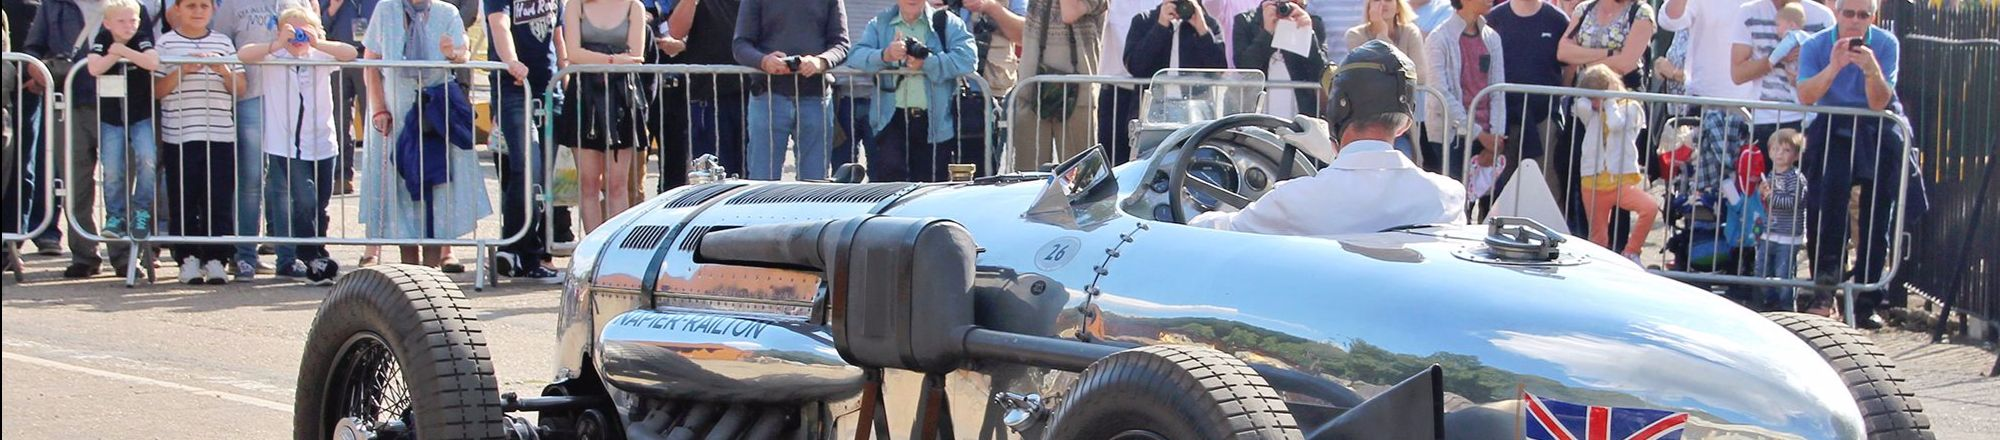 Napier-Railton Museum highlights slider.jpg